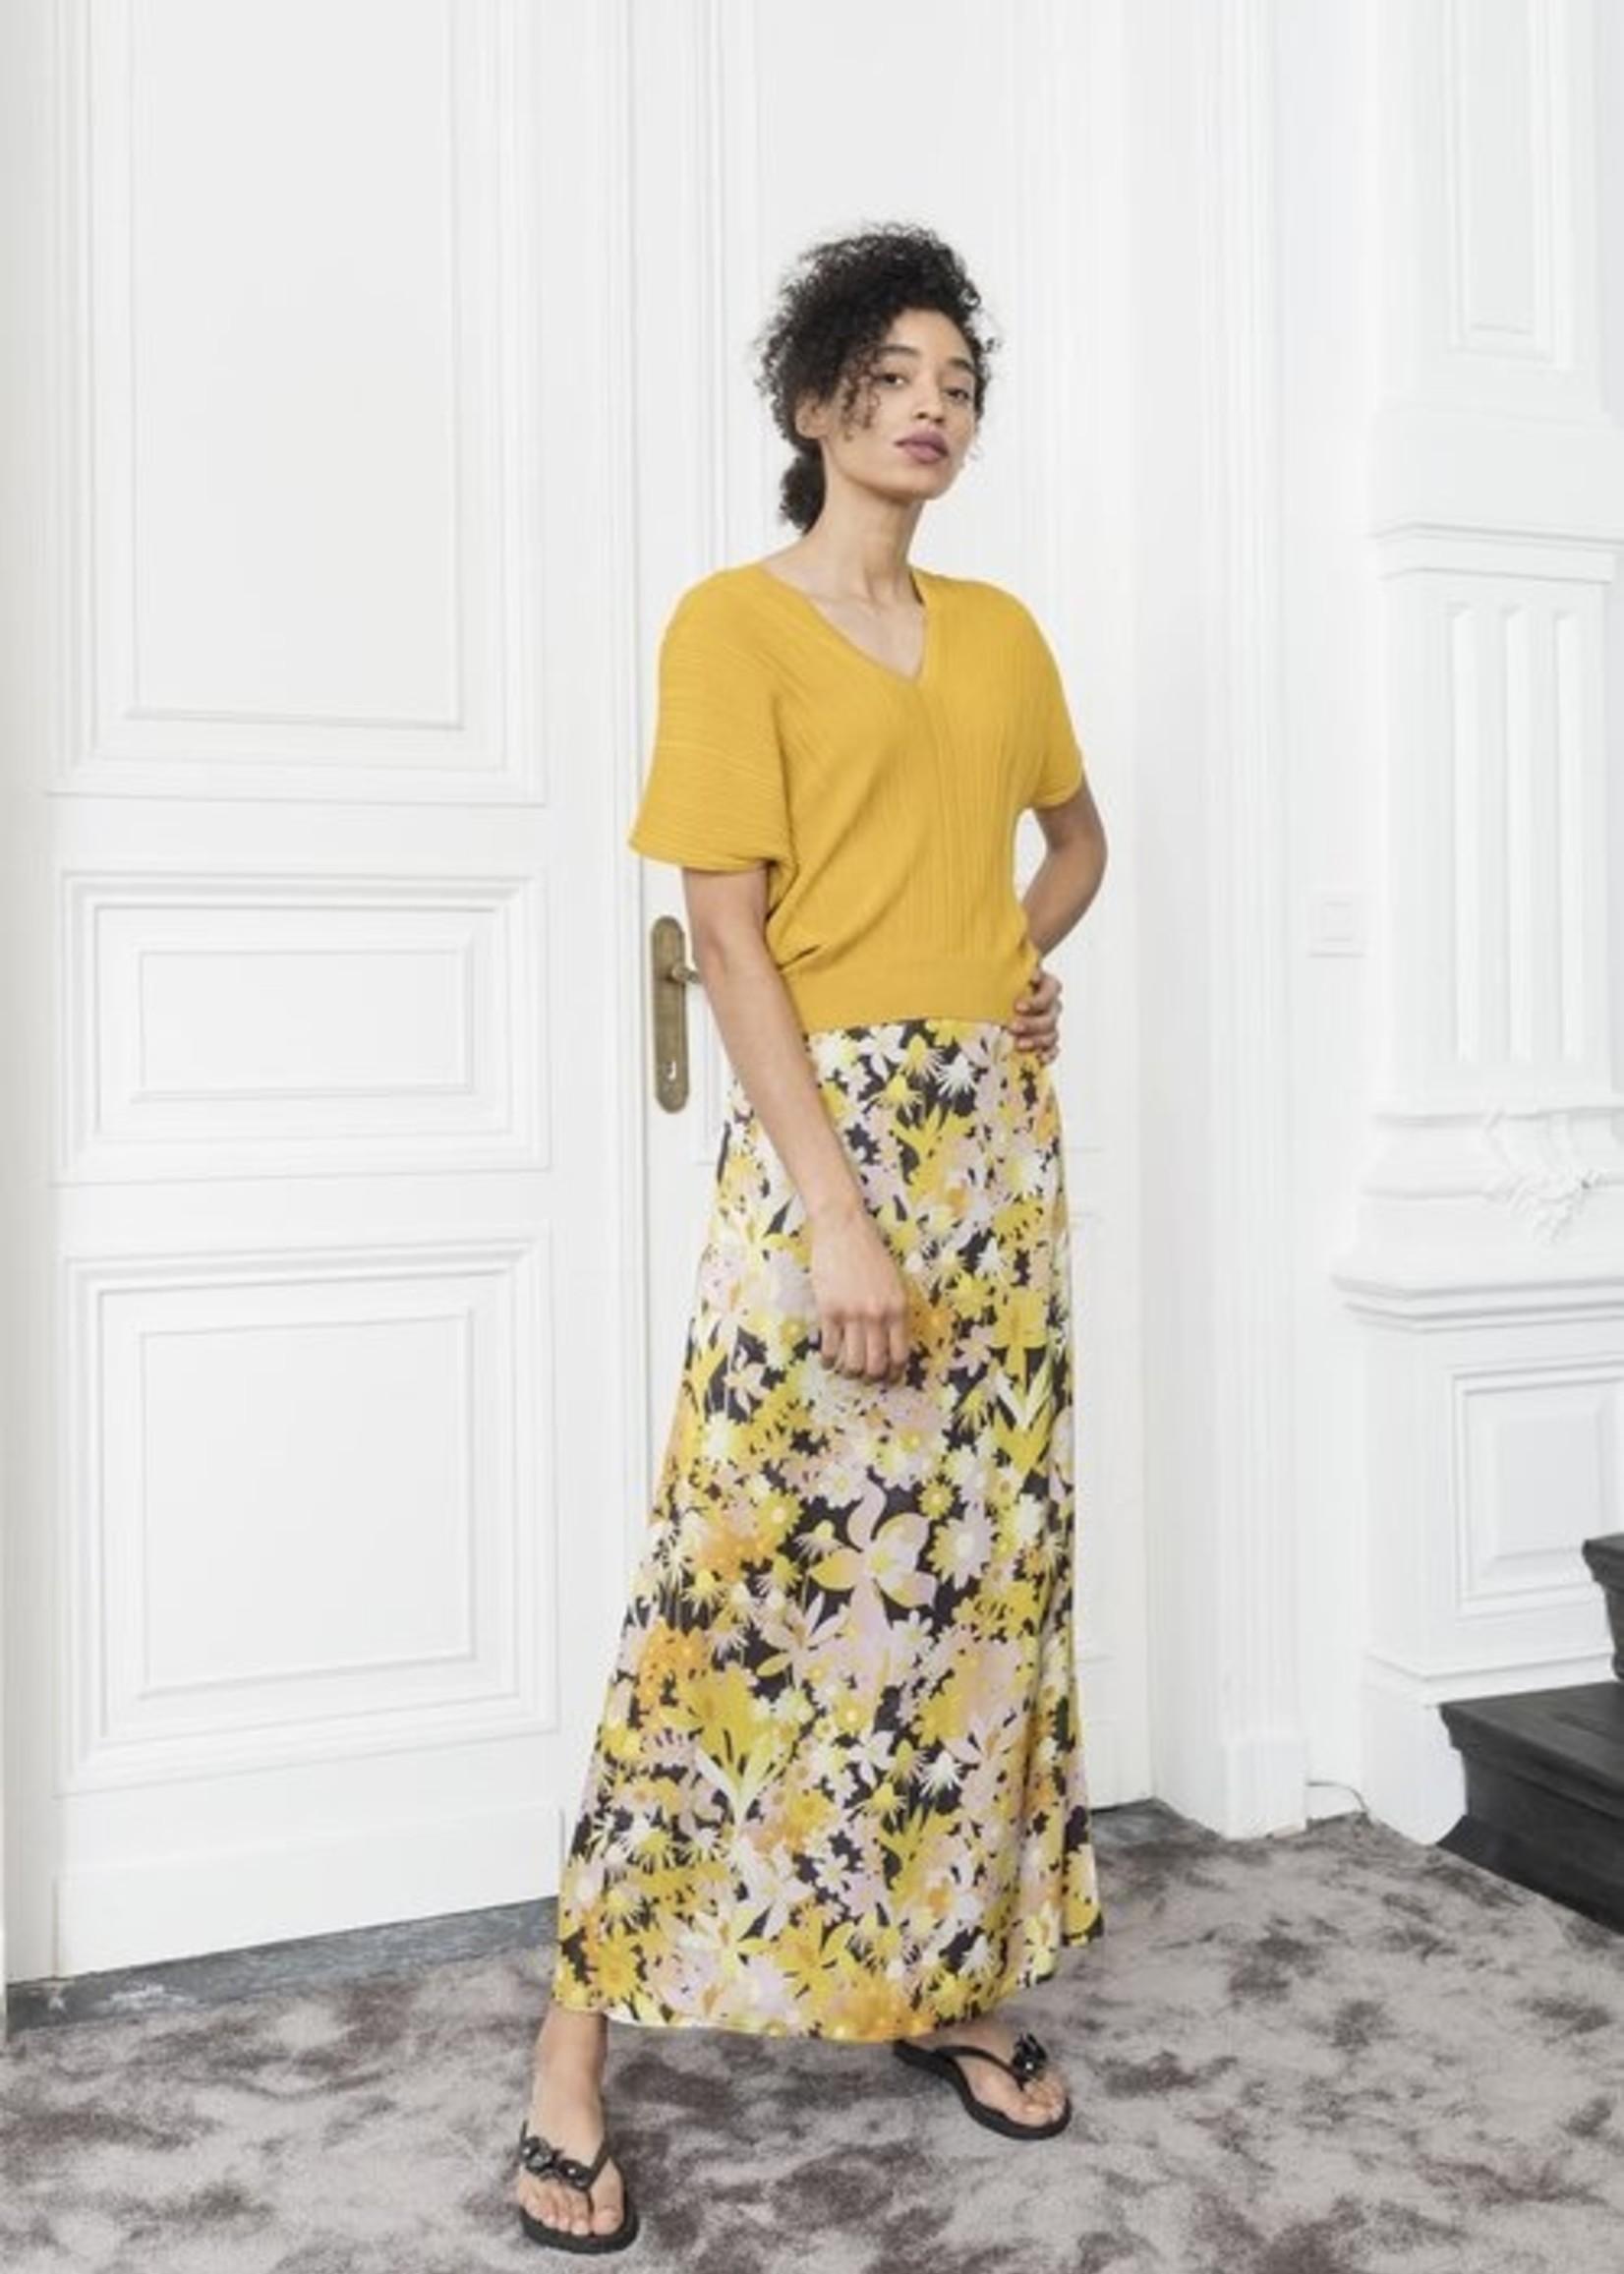 Dame Blanche Skirt arubal powel